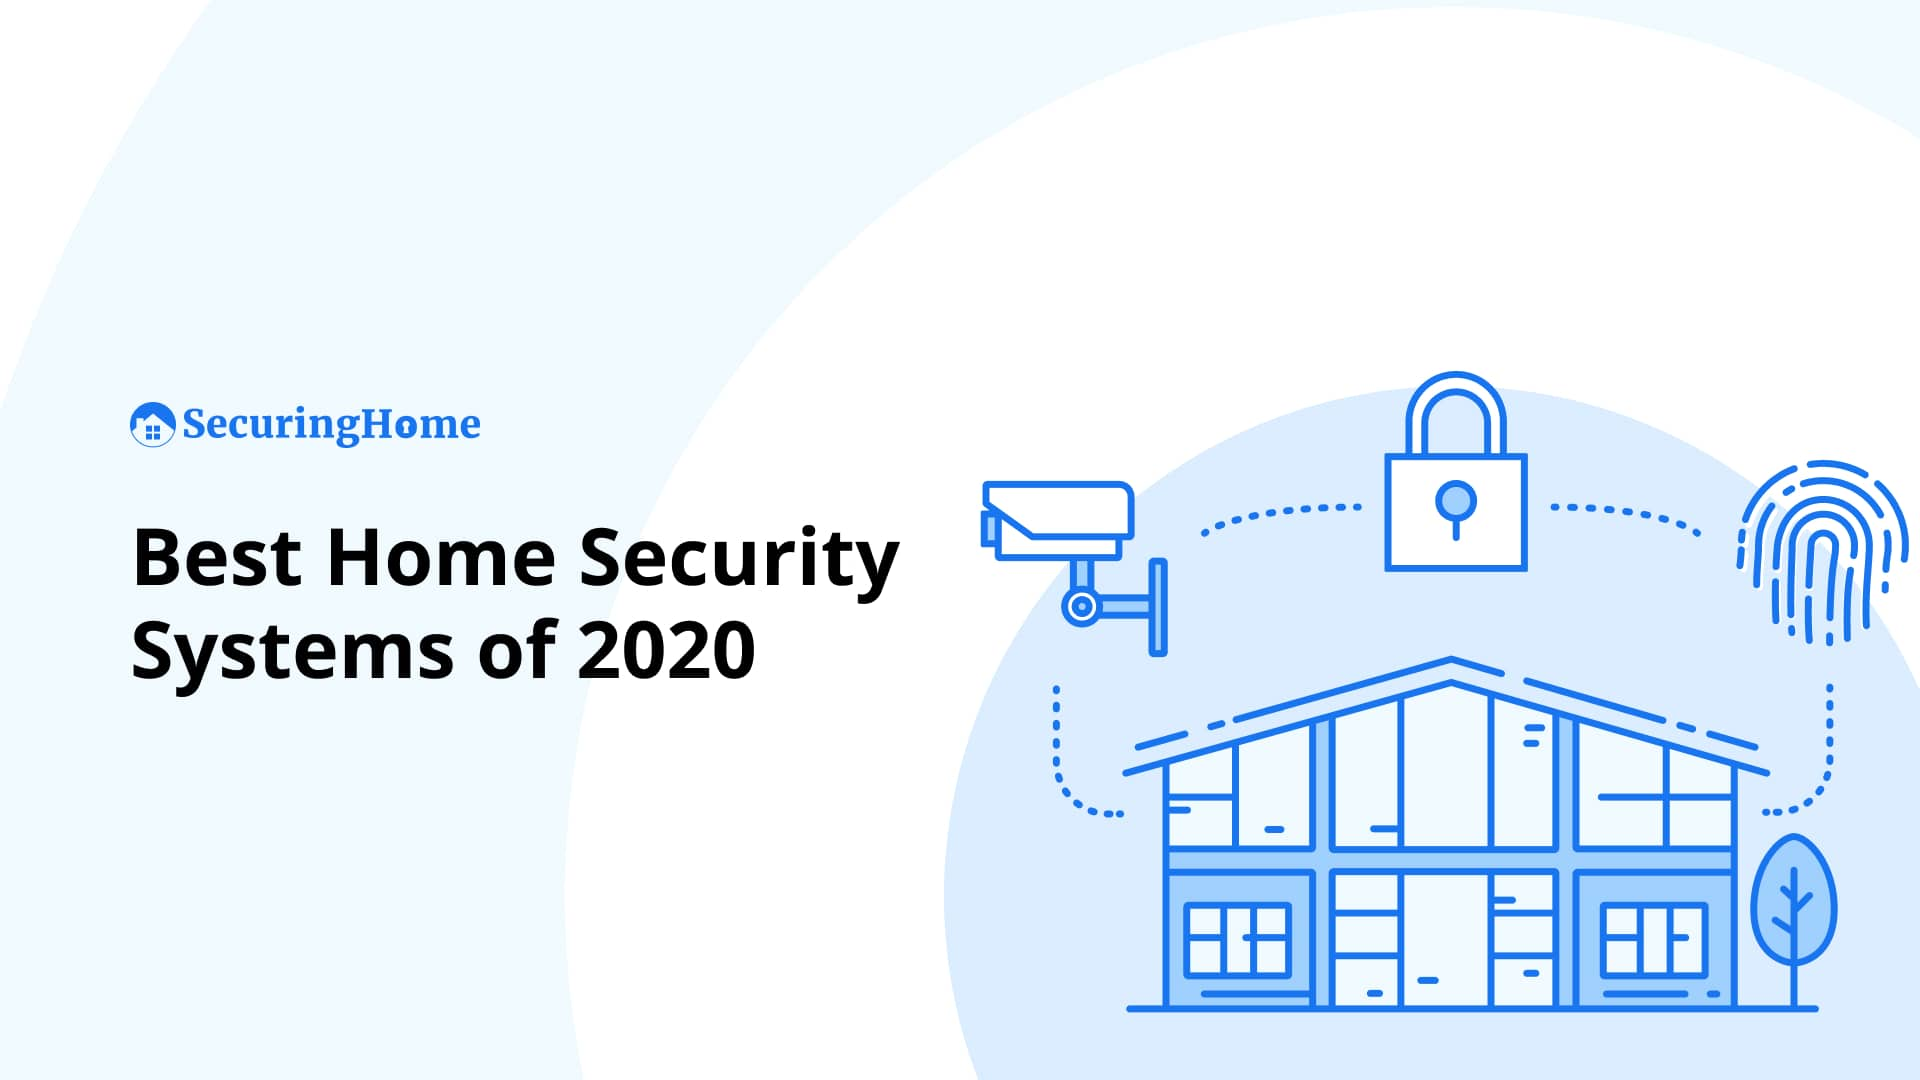 Top 10 Best Home Security Systems of 2020